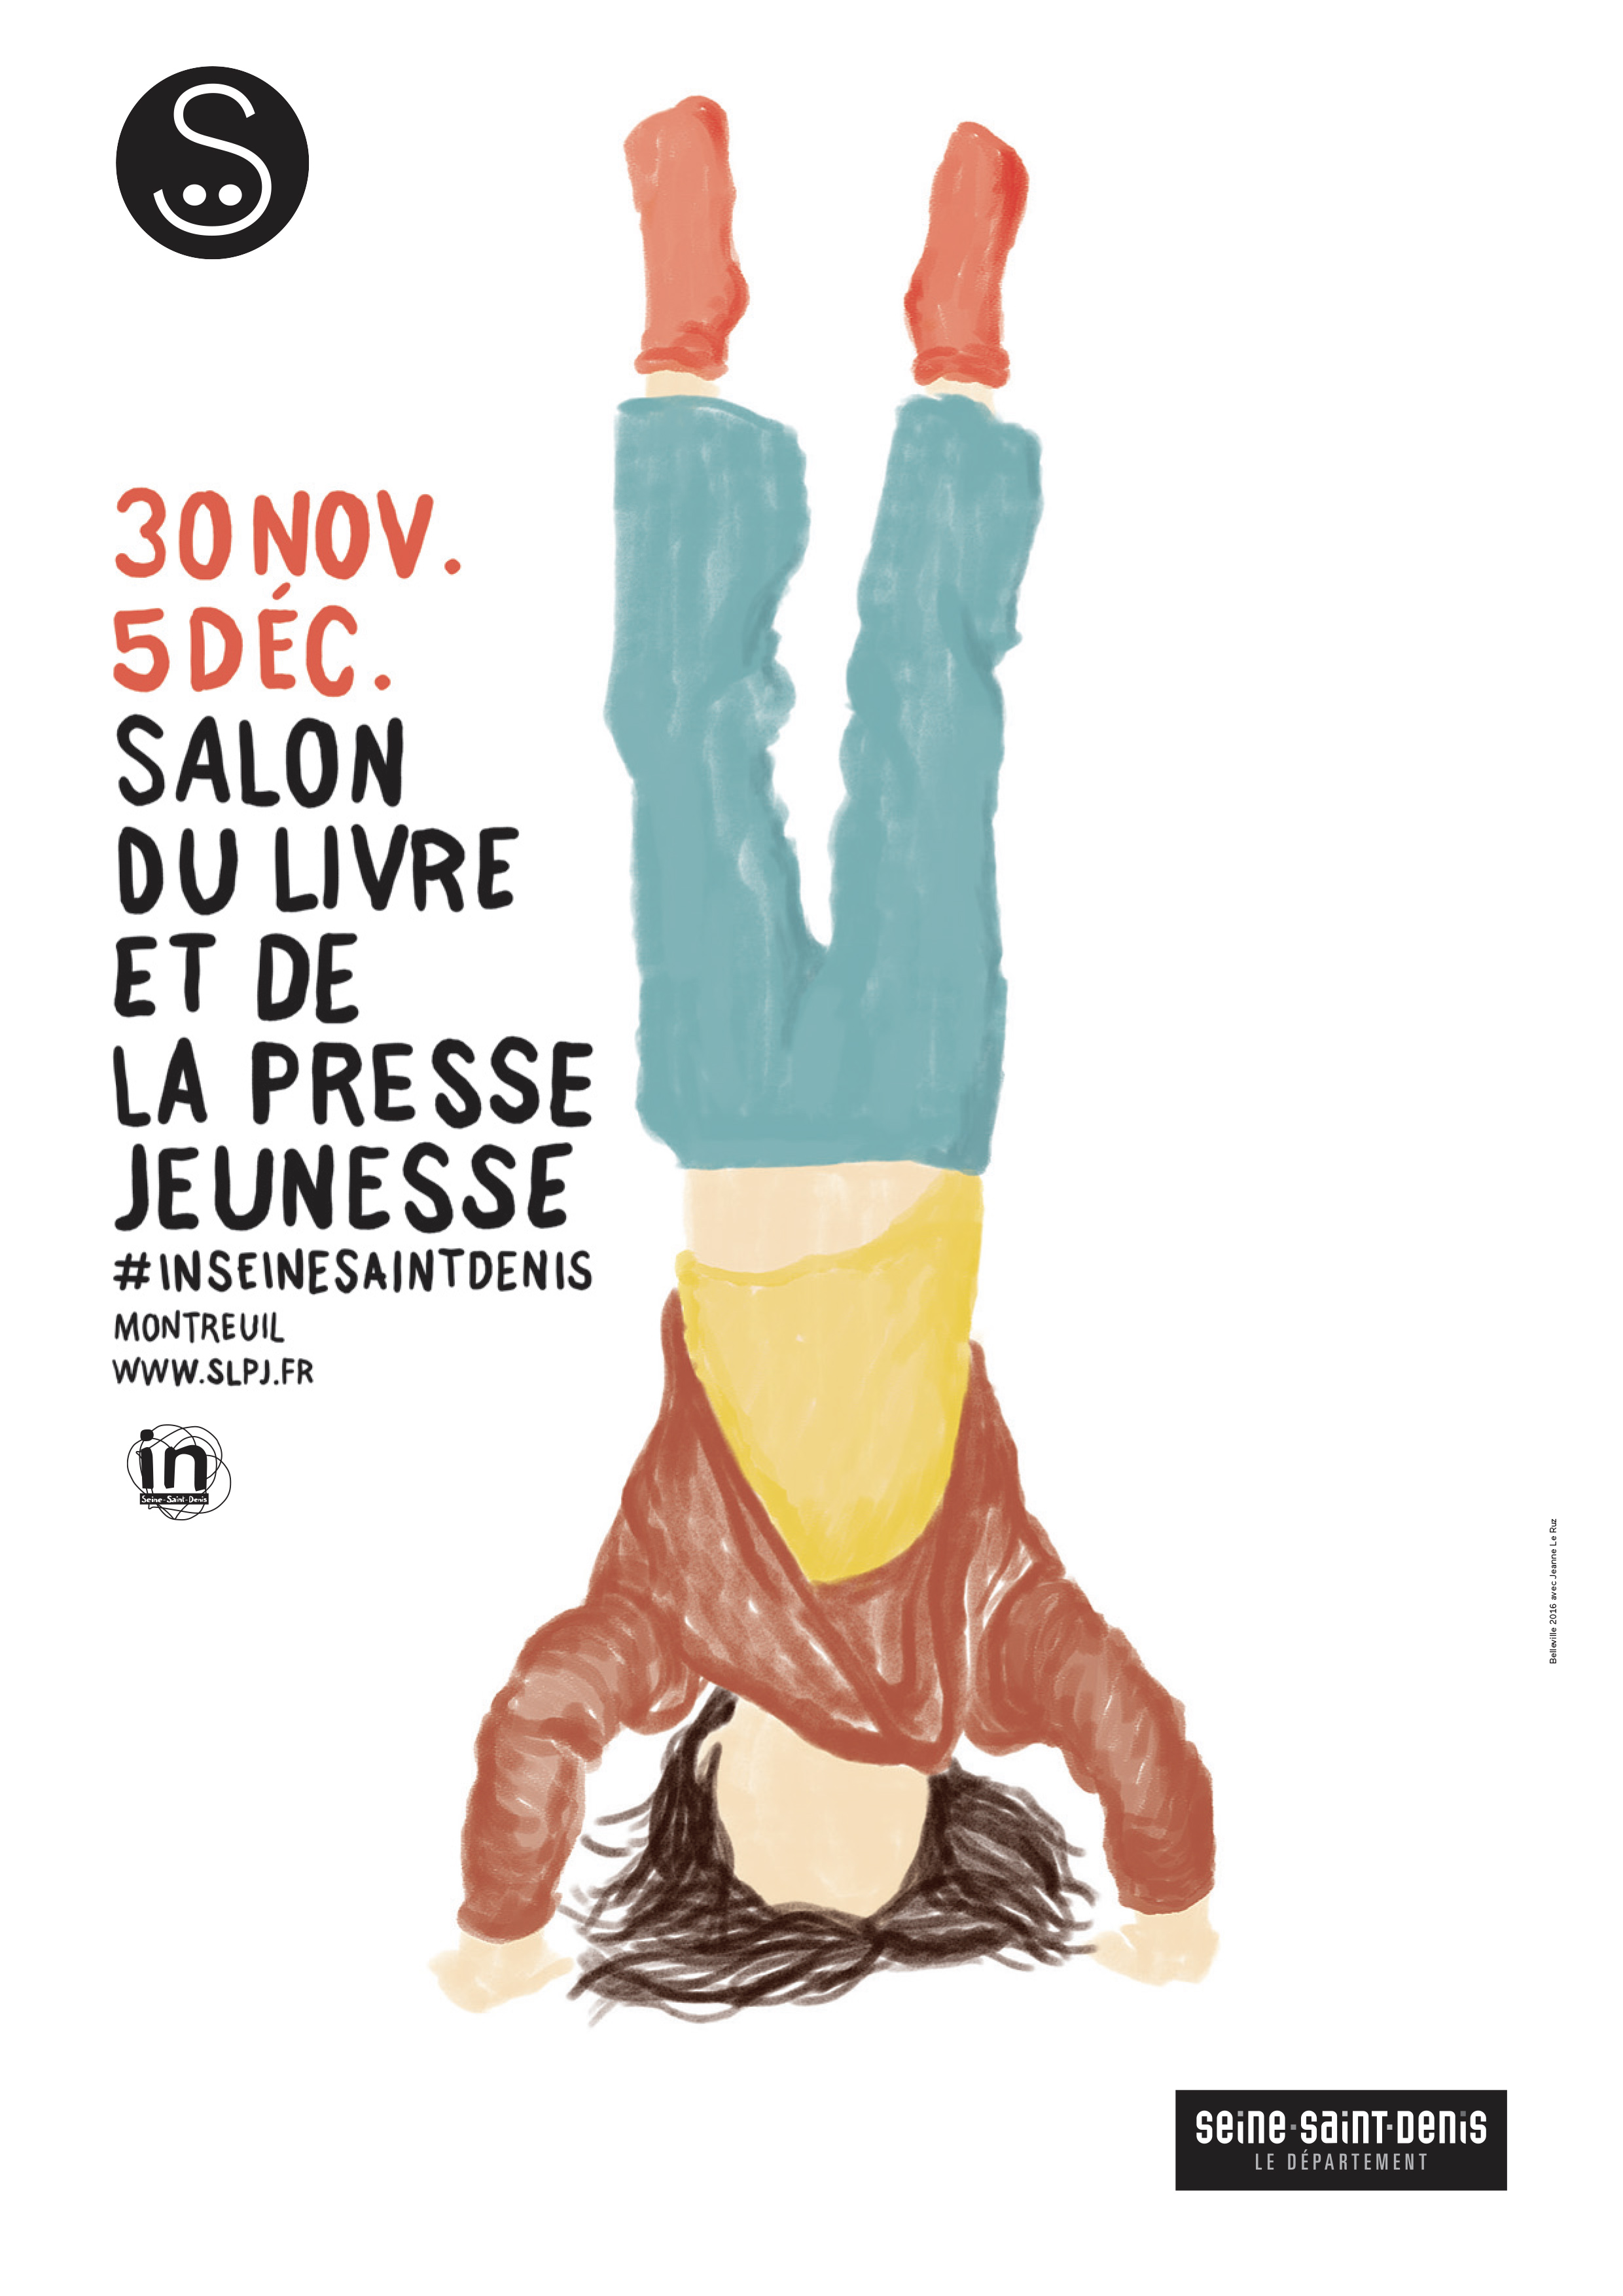 Salon De La Photo 2016 Of Salon Du Livre Et De La Presse Jeunesse 2016 V Nement